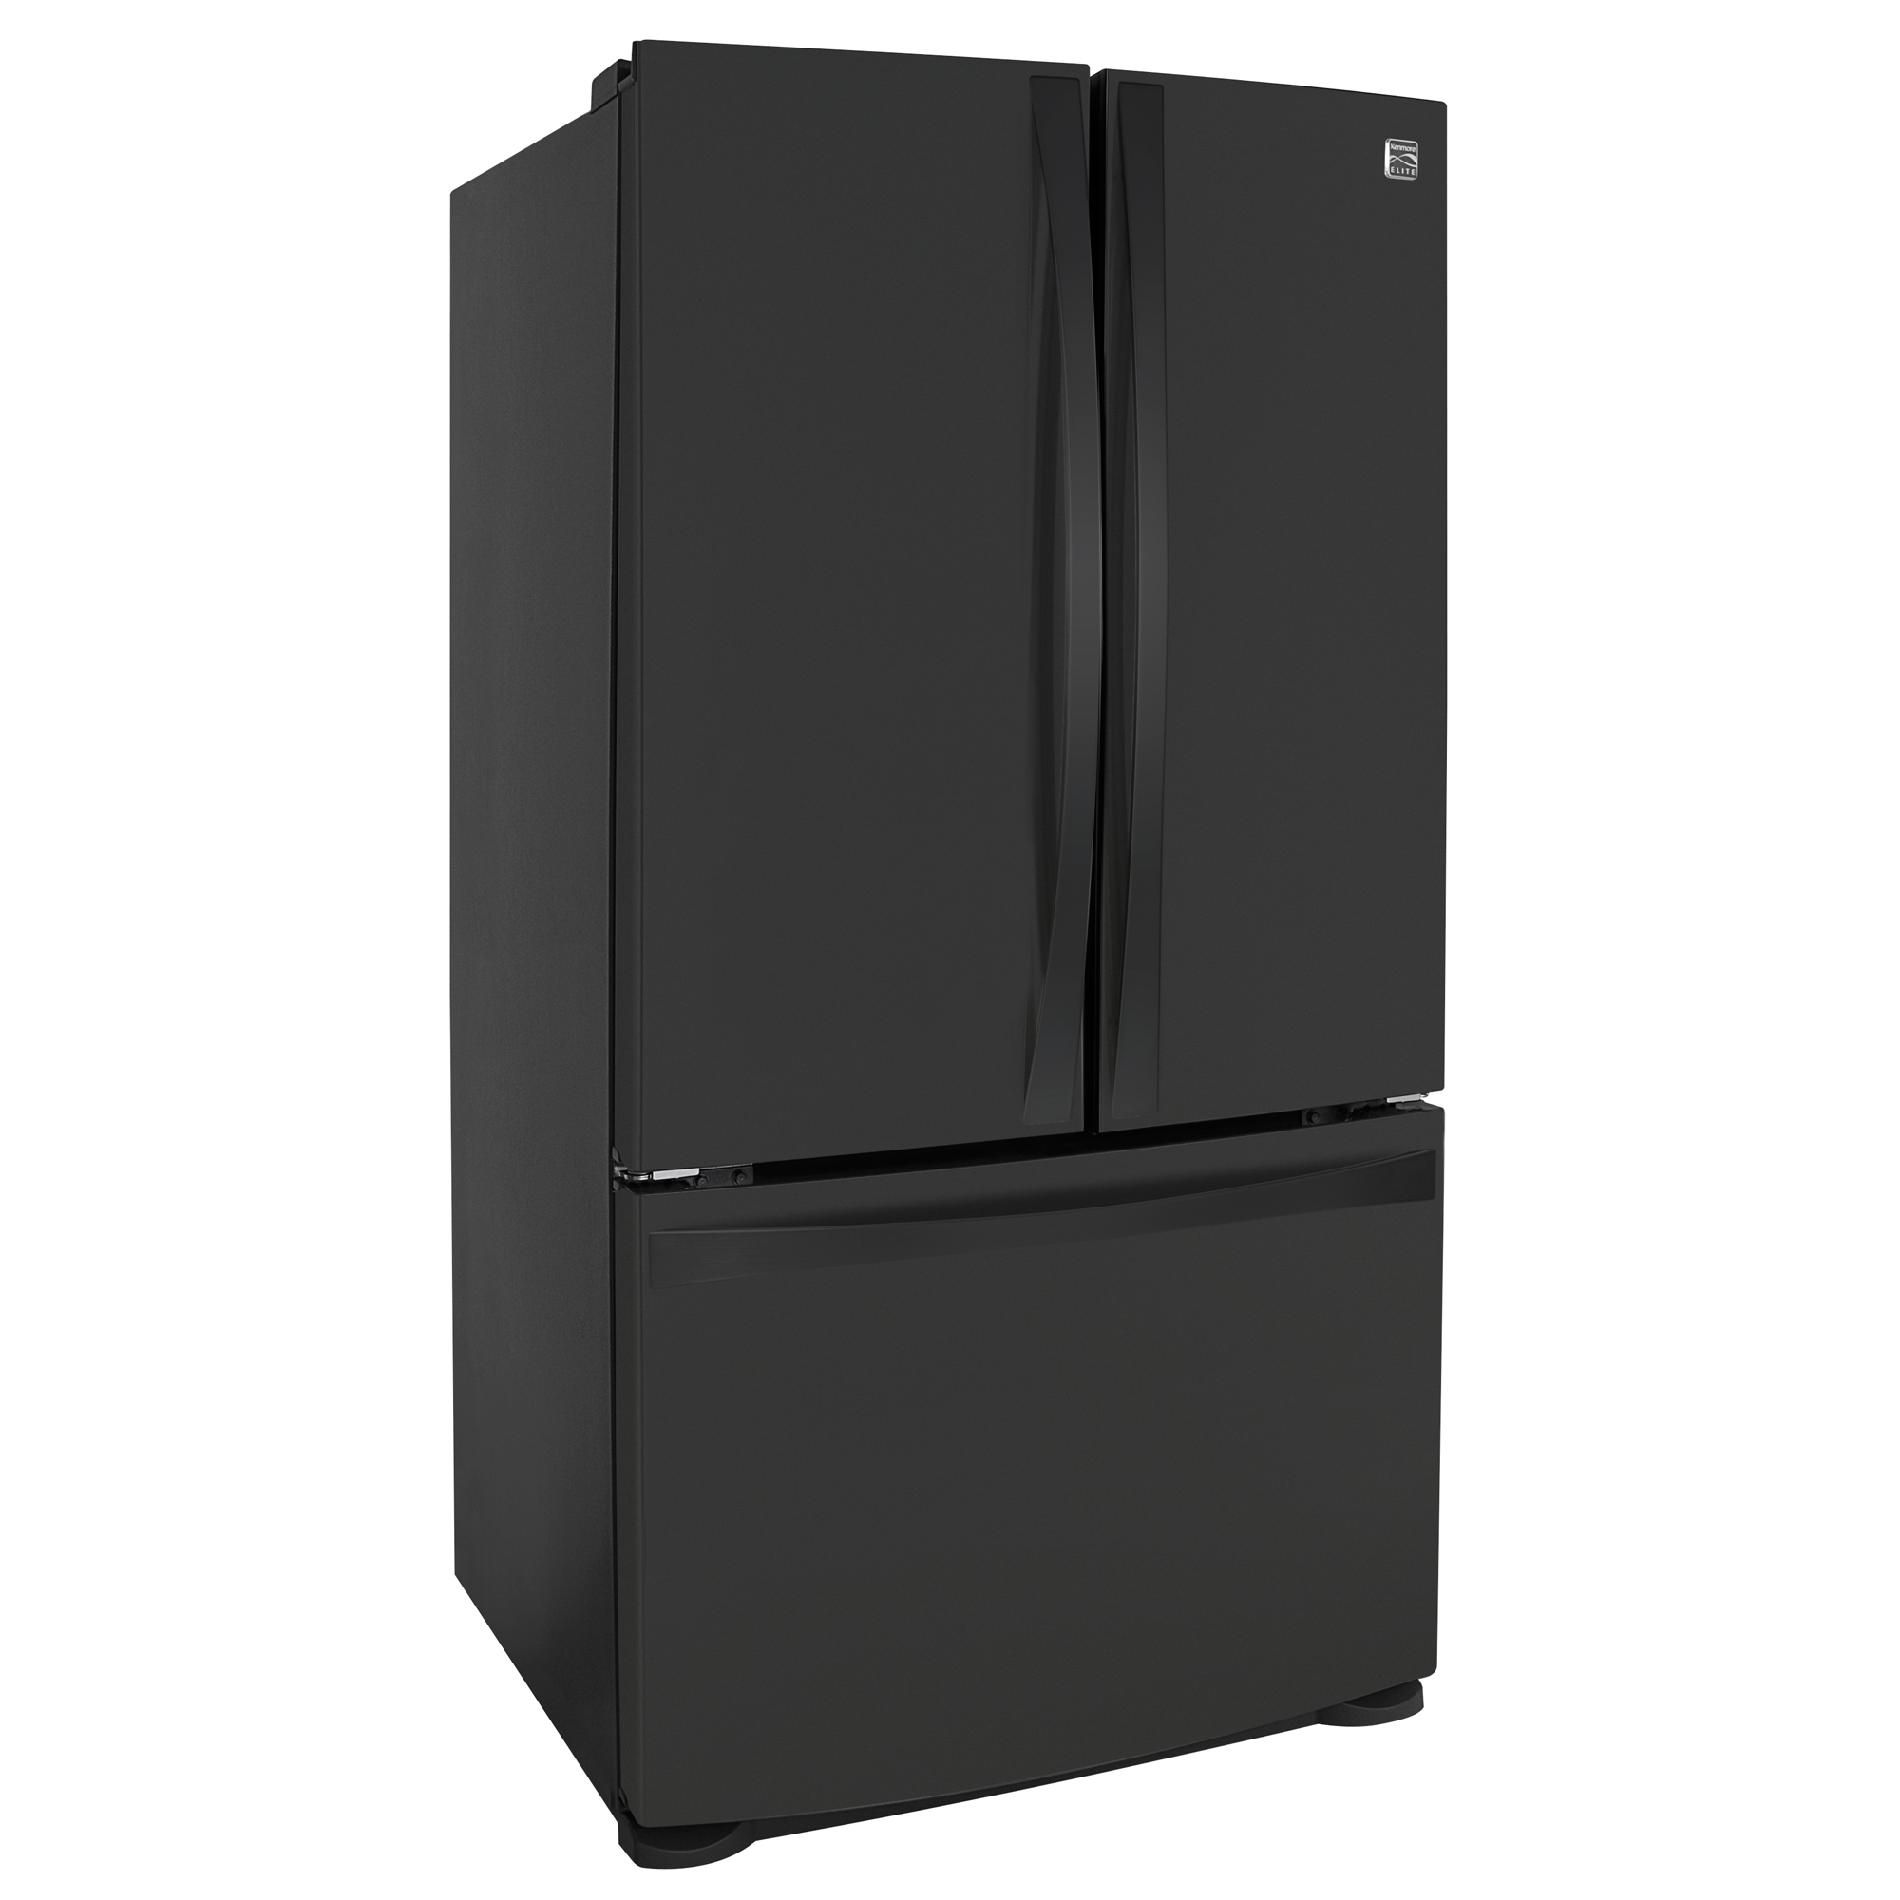 Kenmore Elite 25 cu. ft. French-Door Bottom-Freezer Refrigerator Non-Dispenser - Black